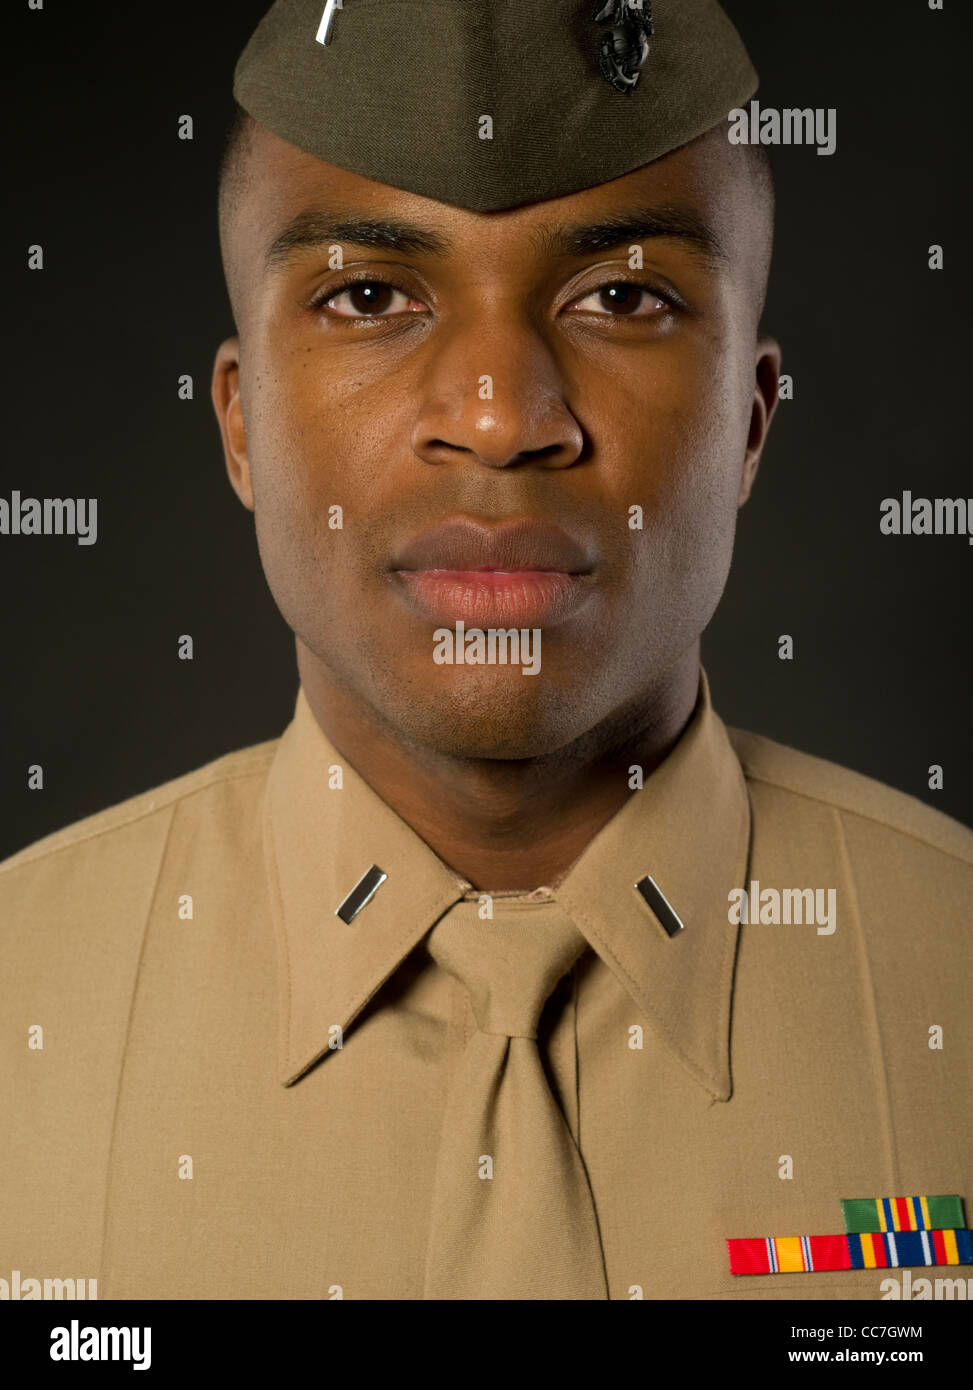 United States Marine Corps Officer in Service B ( Bravos ...